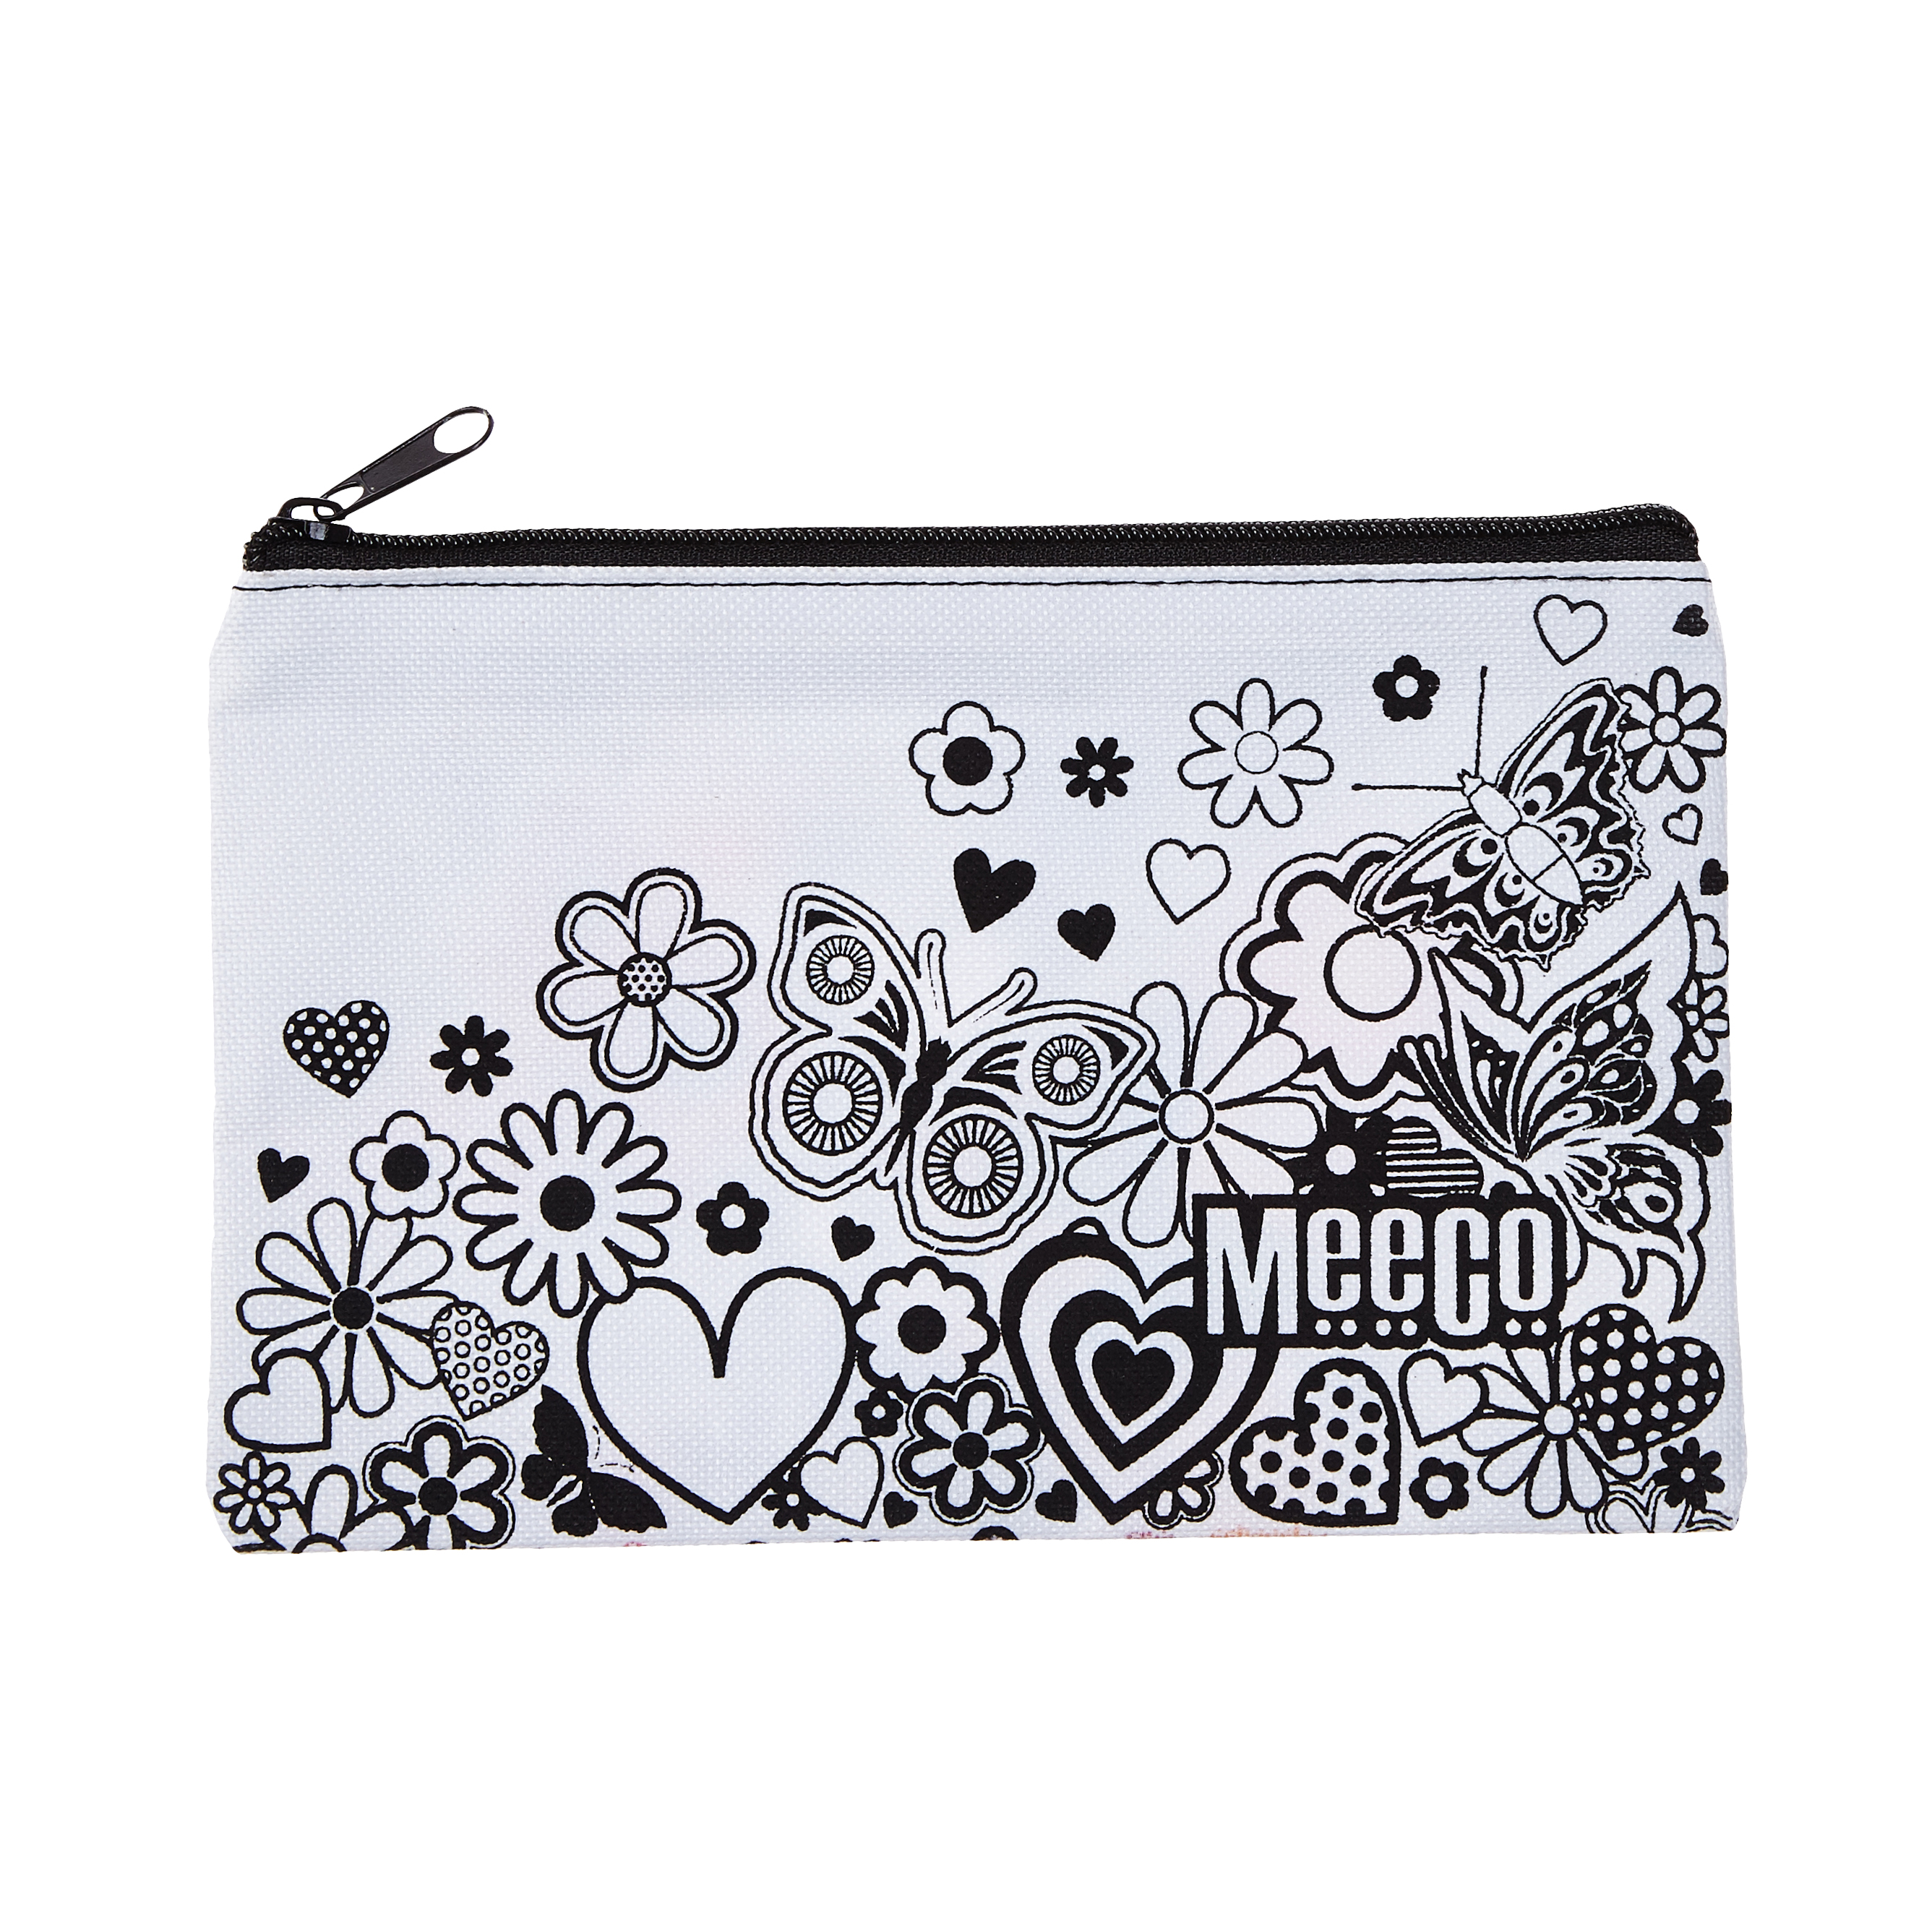 DoodleMe Pencil Bag Small